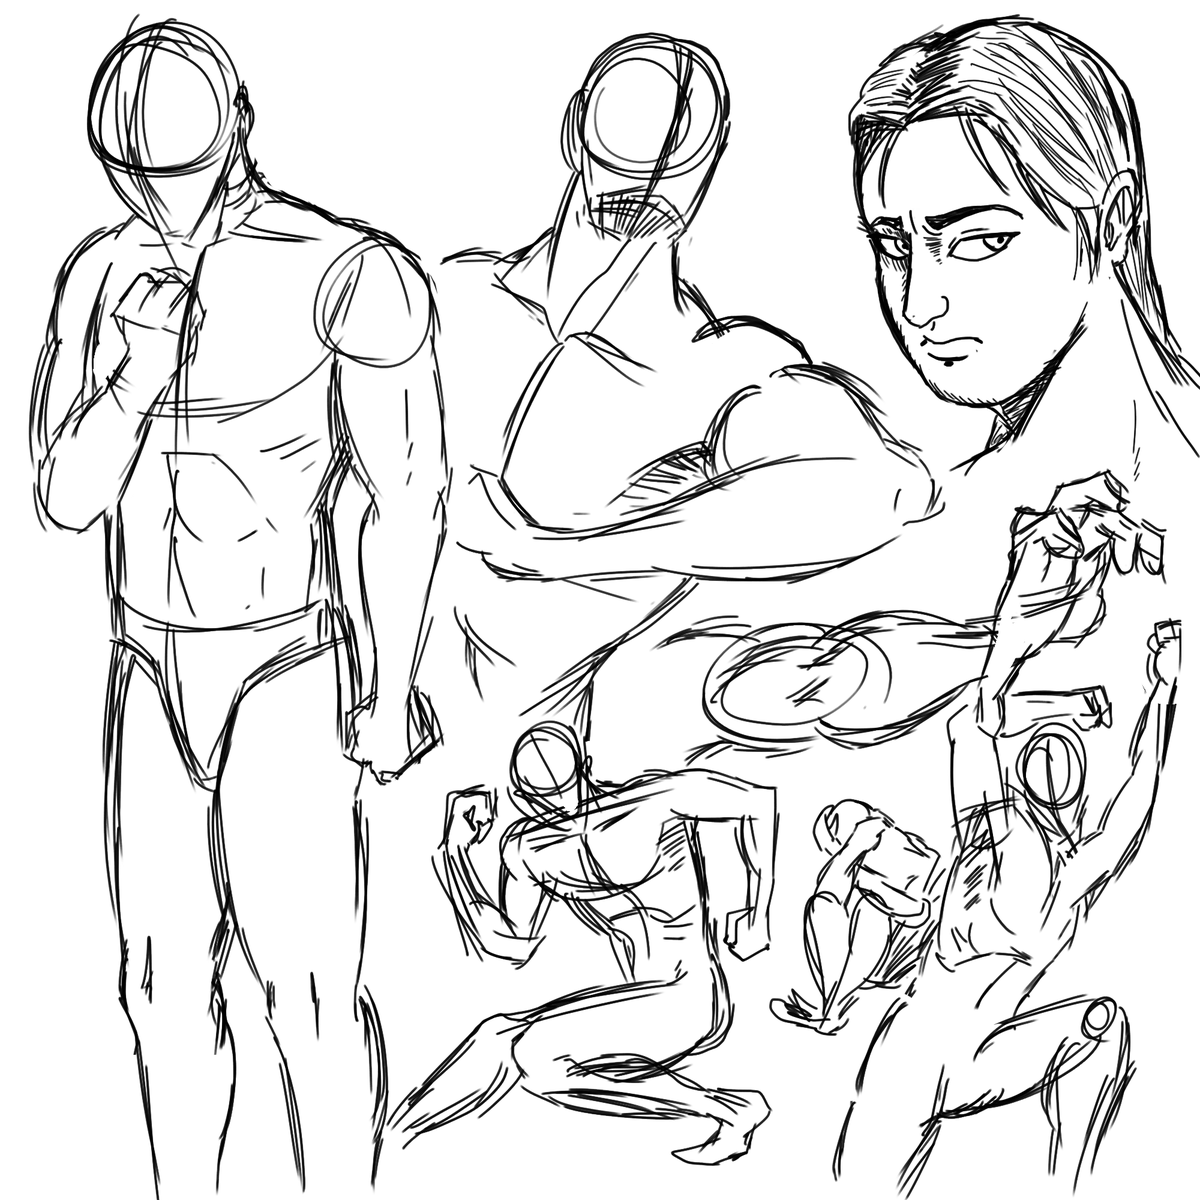 Doing some sketching without reference because, man, I needed to warm up before working again. #sketch #boceto #drawing #dibujo #WarmUps  #anatomy #probablybadanatomy https://t.co/xyubsRQOth